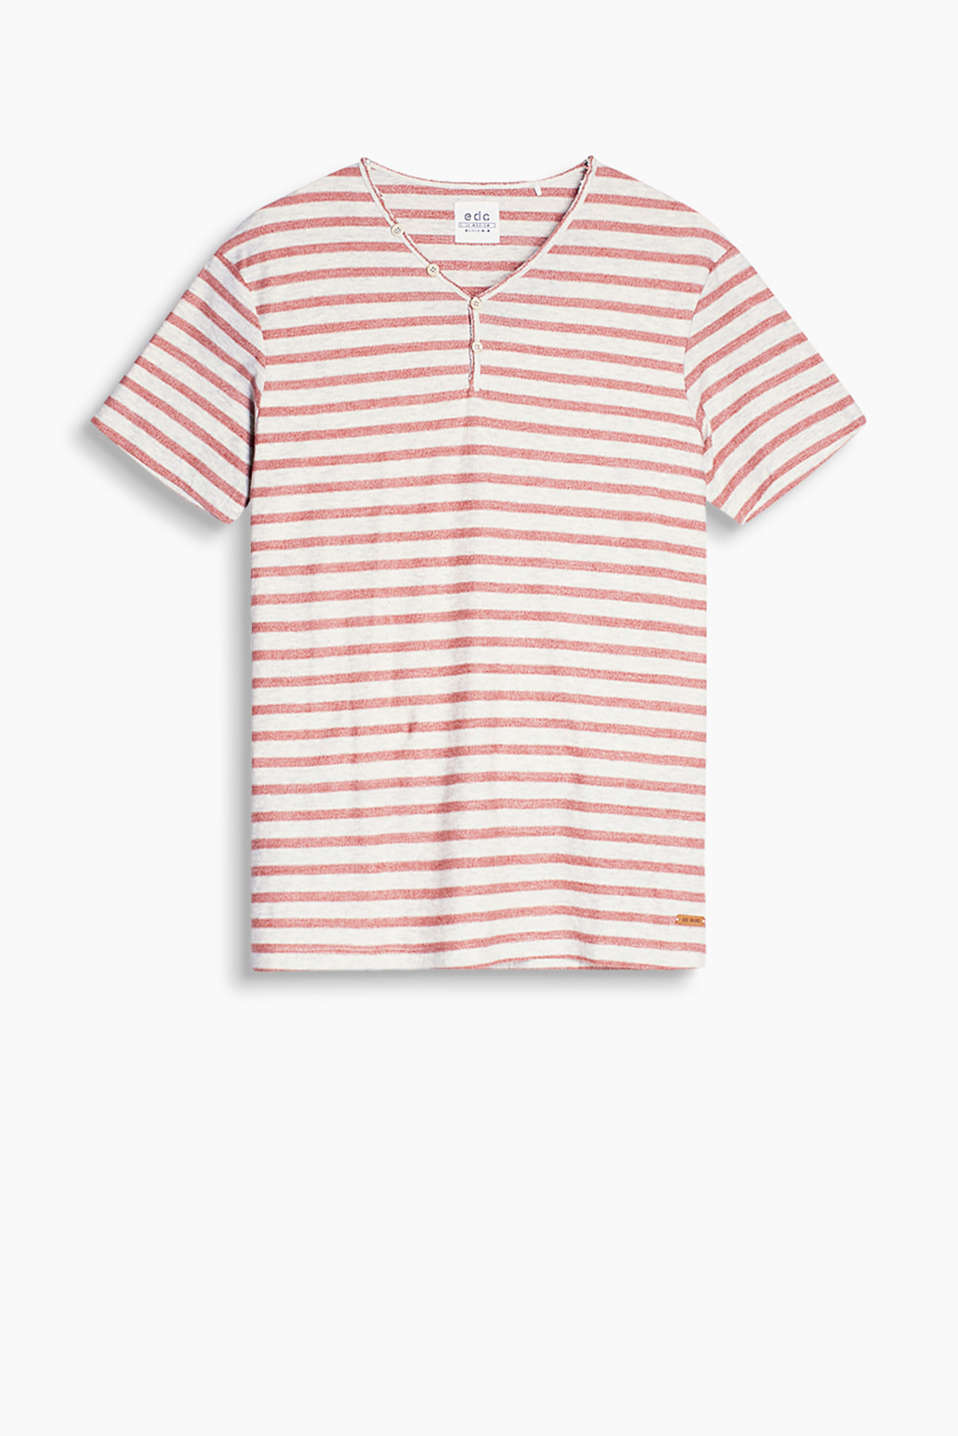 Henley-style T-shirt in a soft fabric blend with a very high percentage of cotton